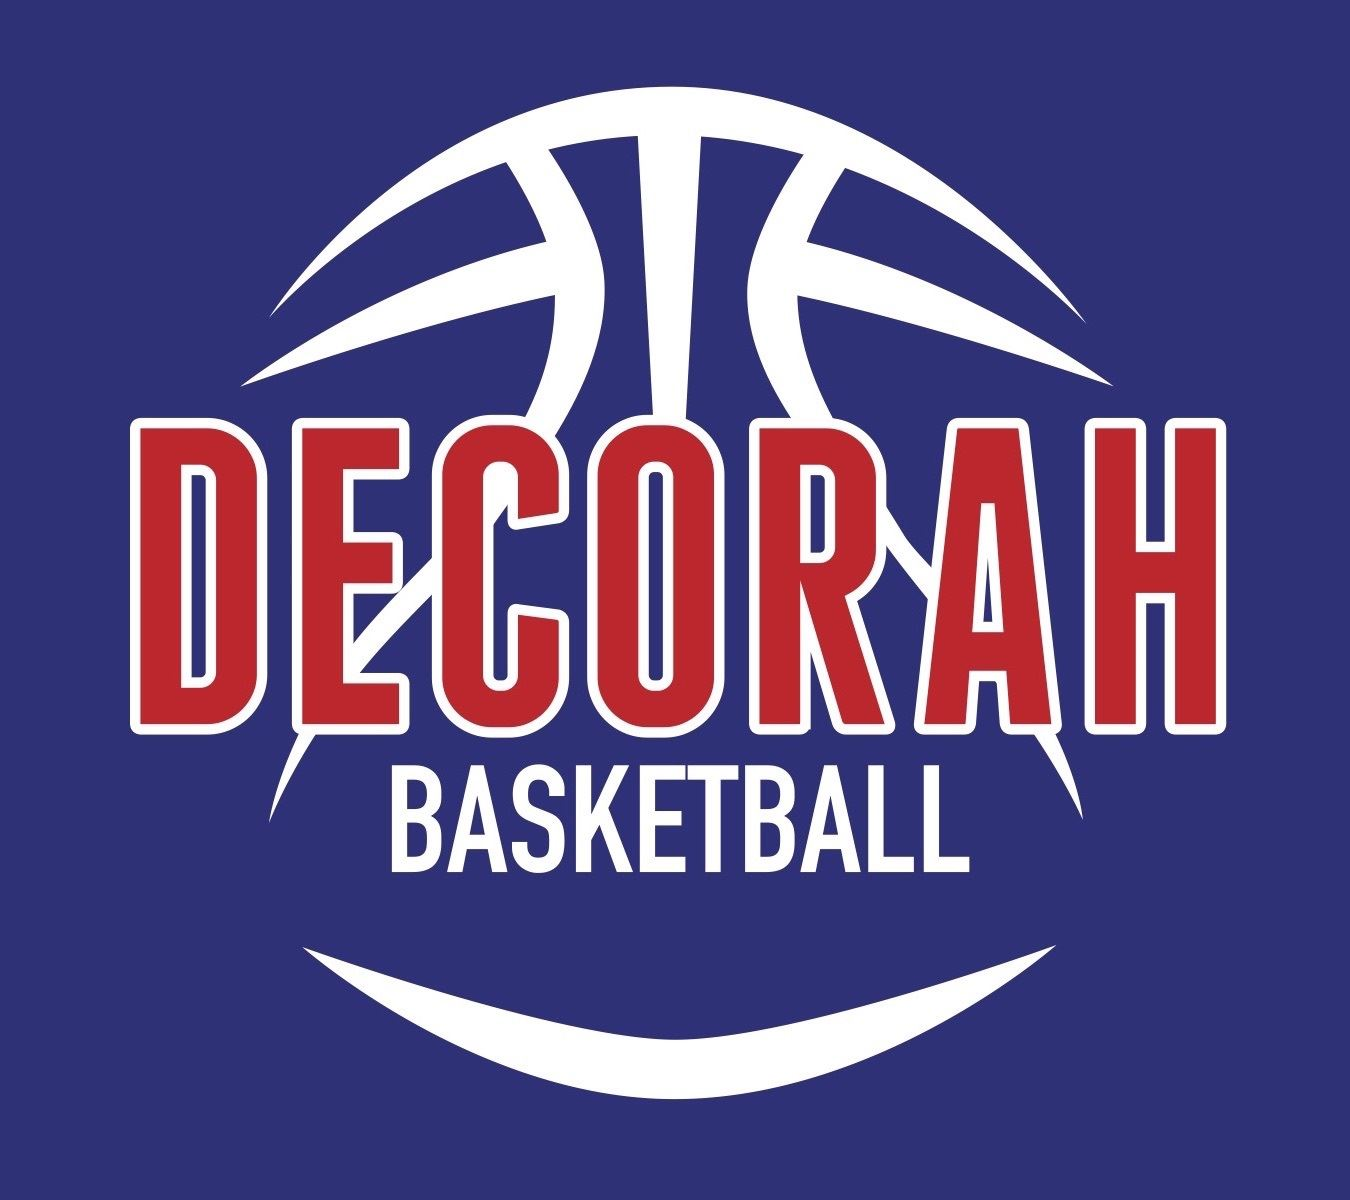 Decorah High School - Girls' Varsity Basketball - New